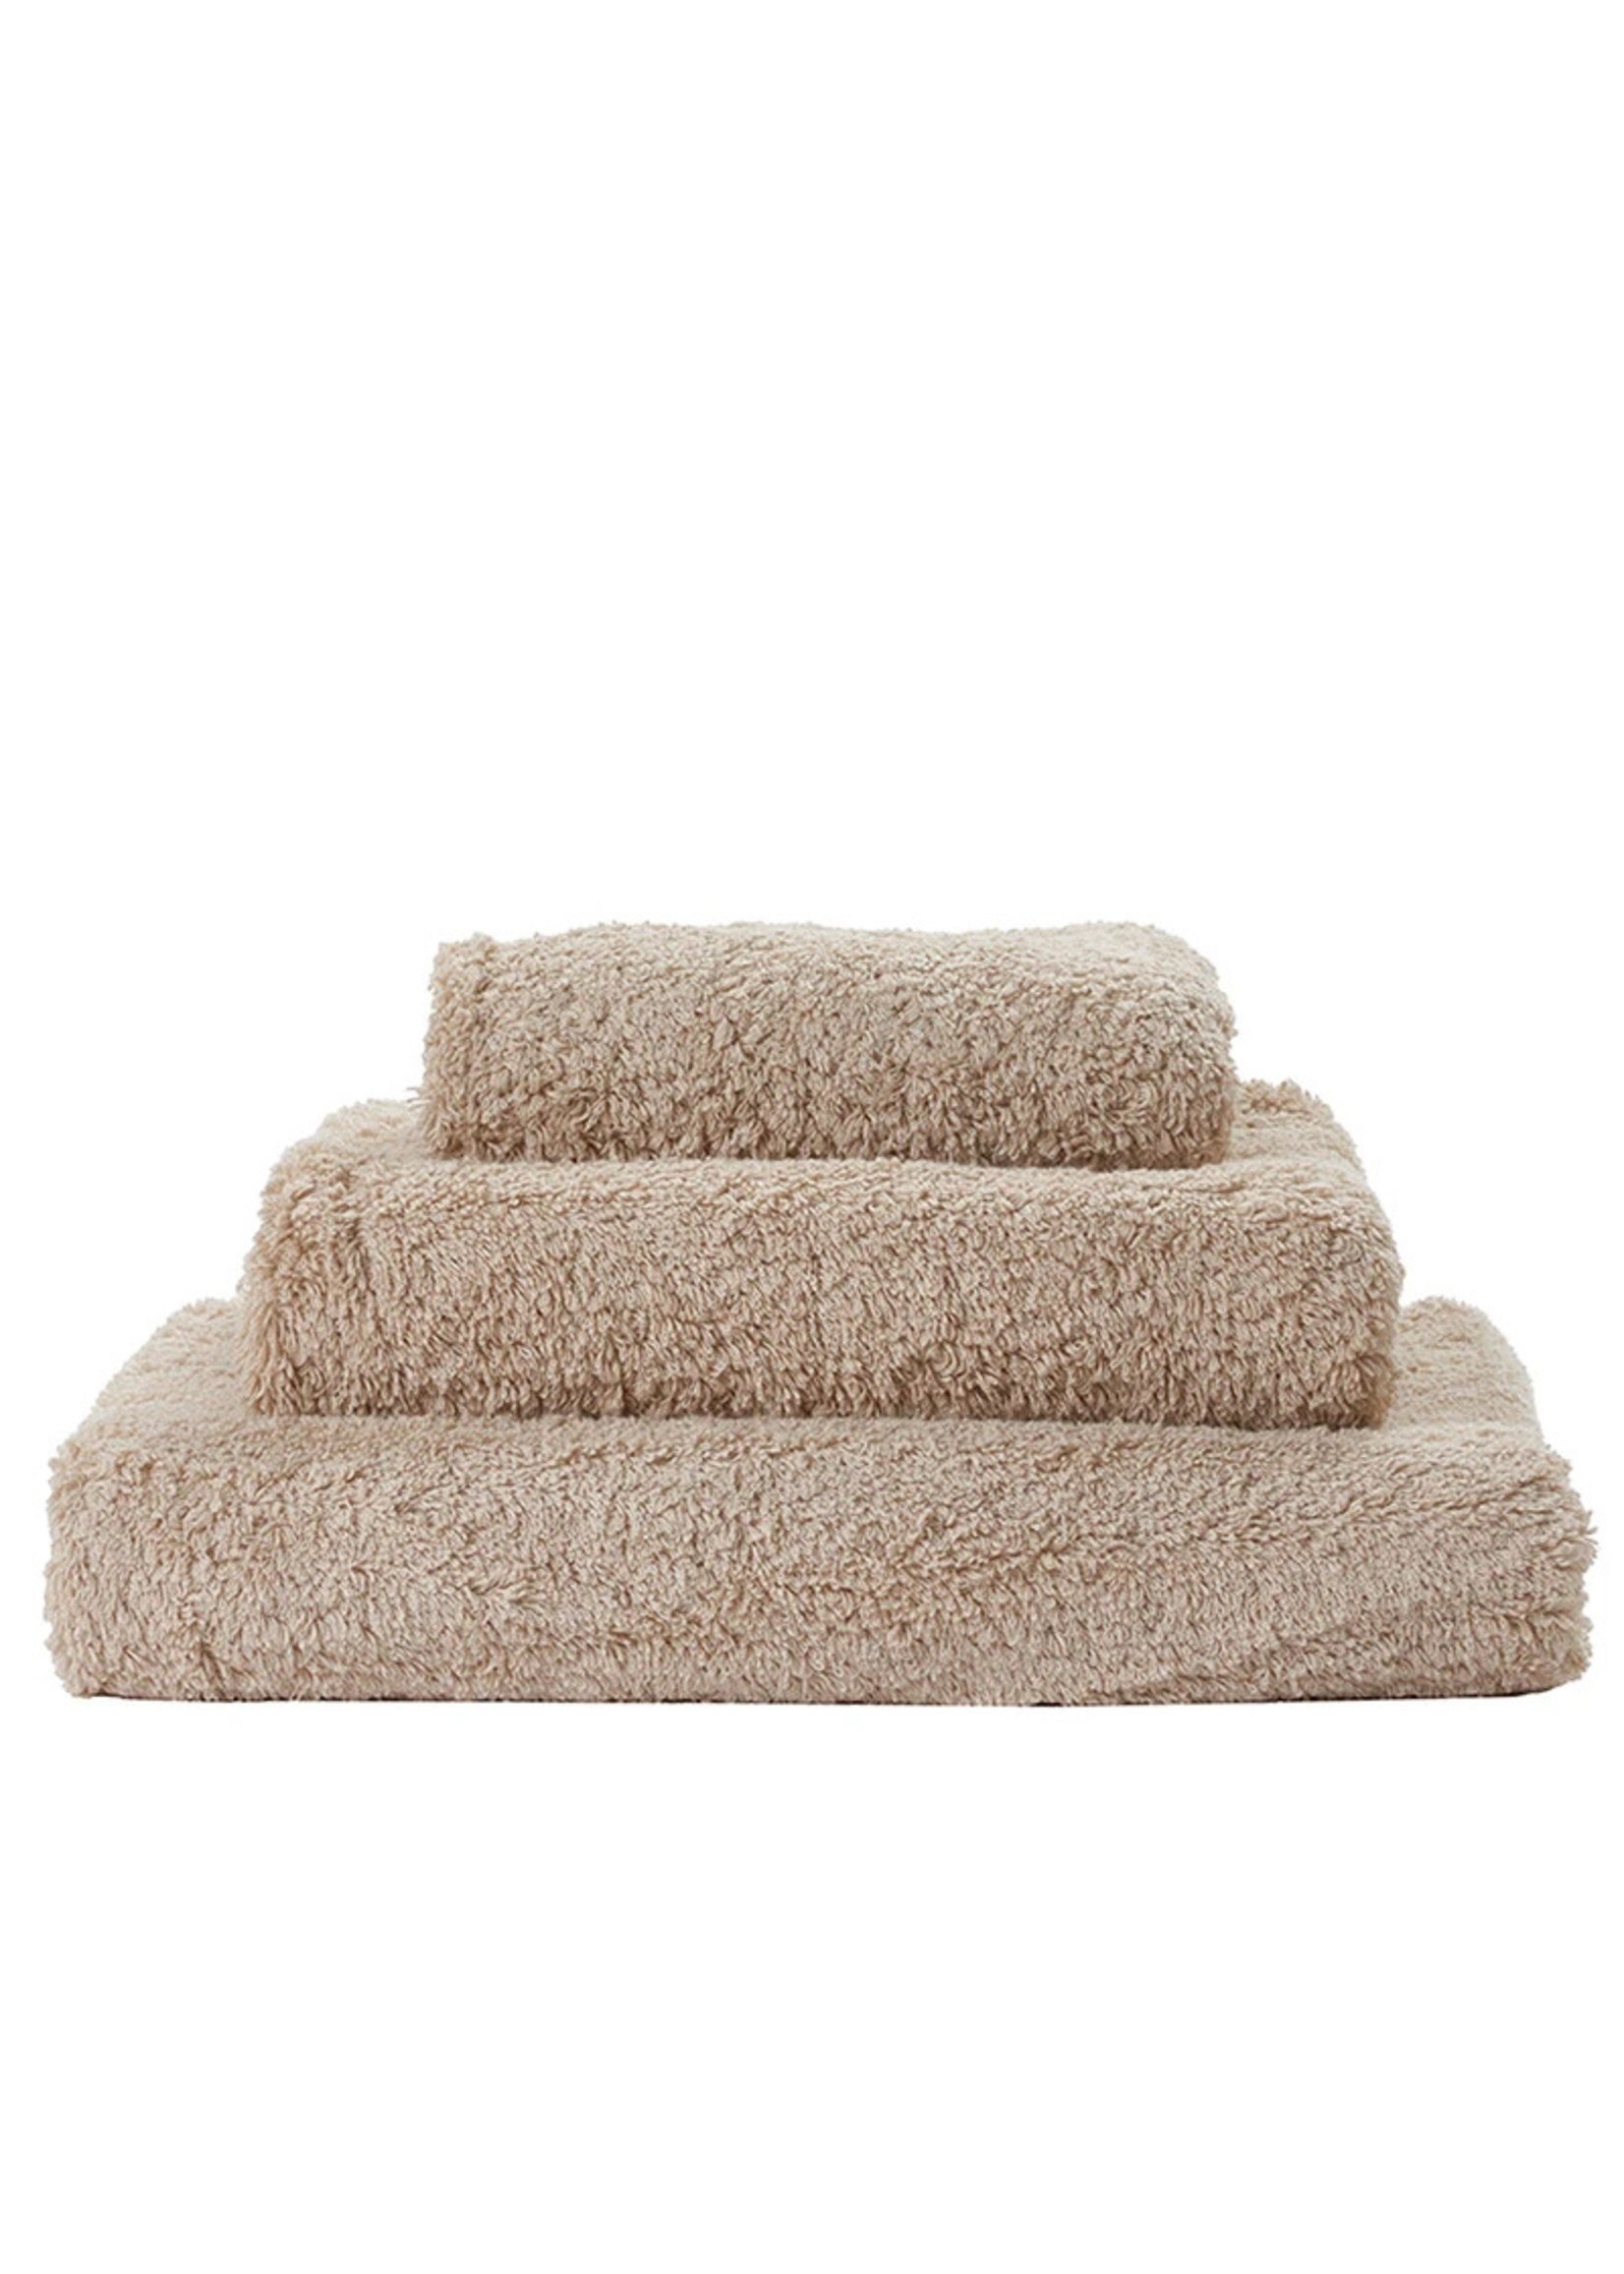 Abyss & Habidecor Super Pile Linen Towels